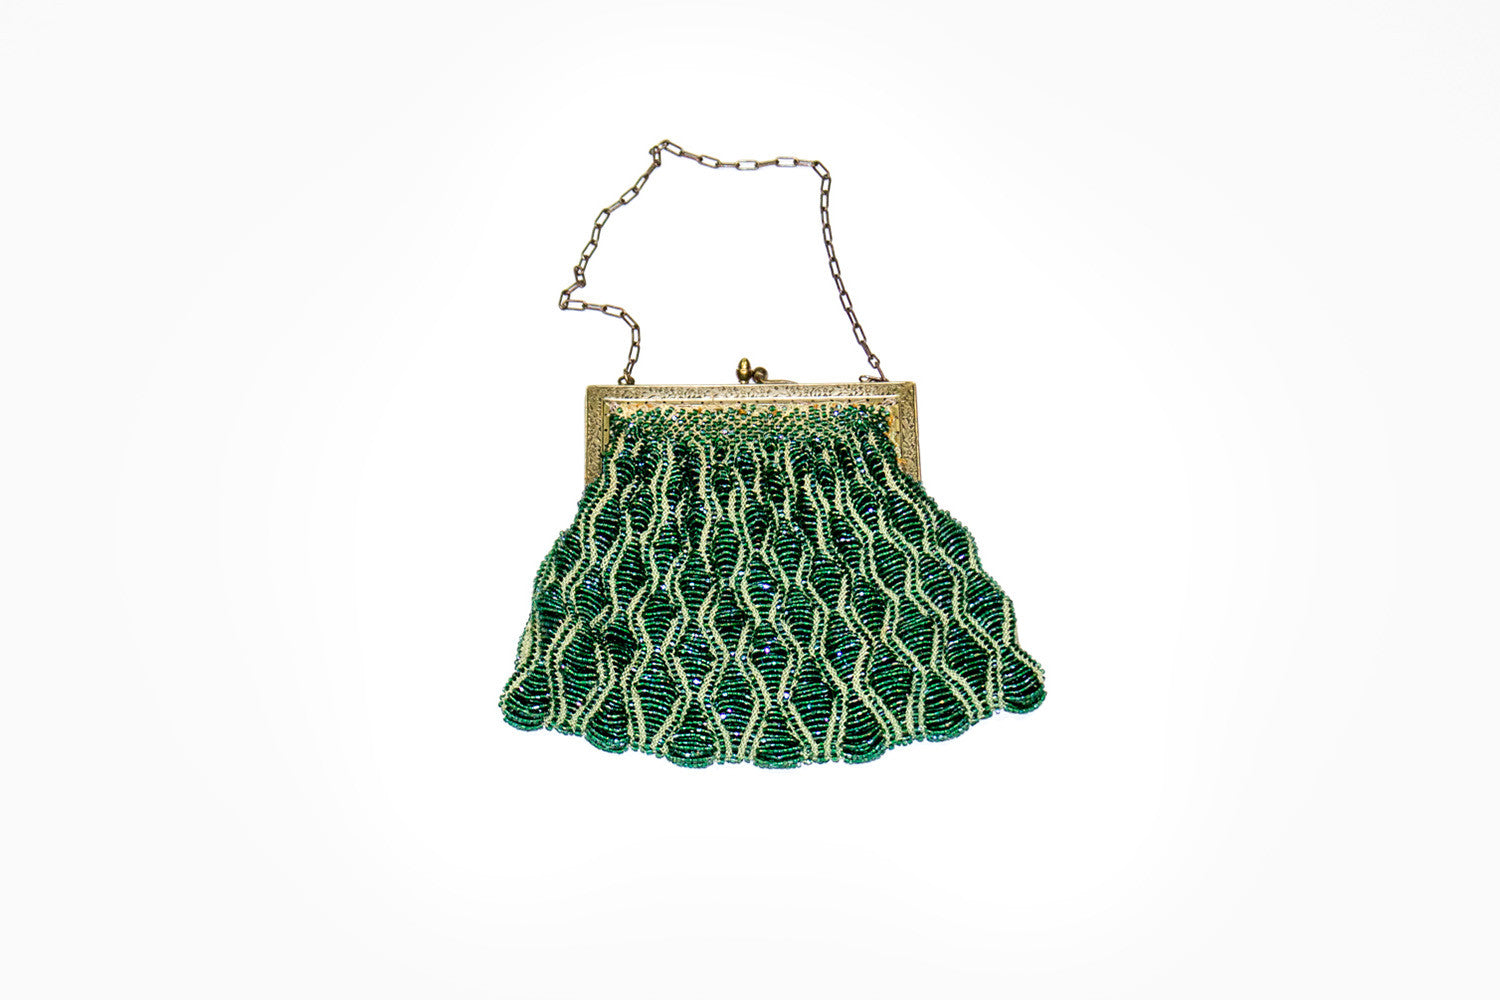 1930s Beaded Evening Bag